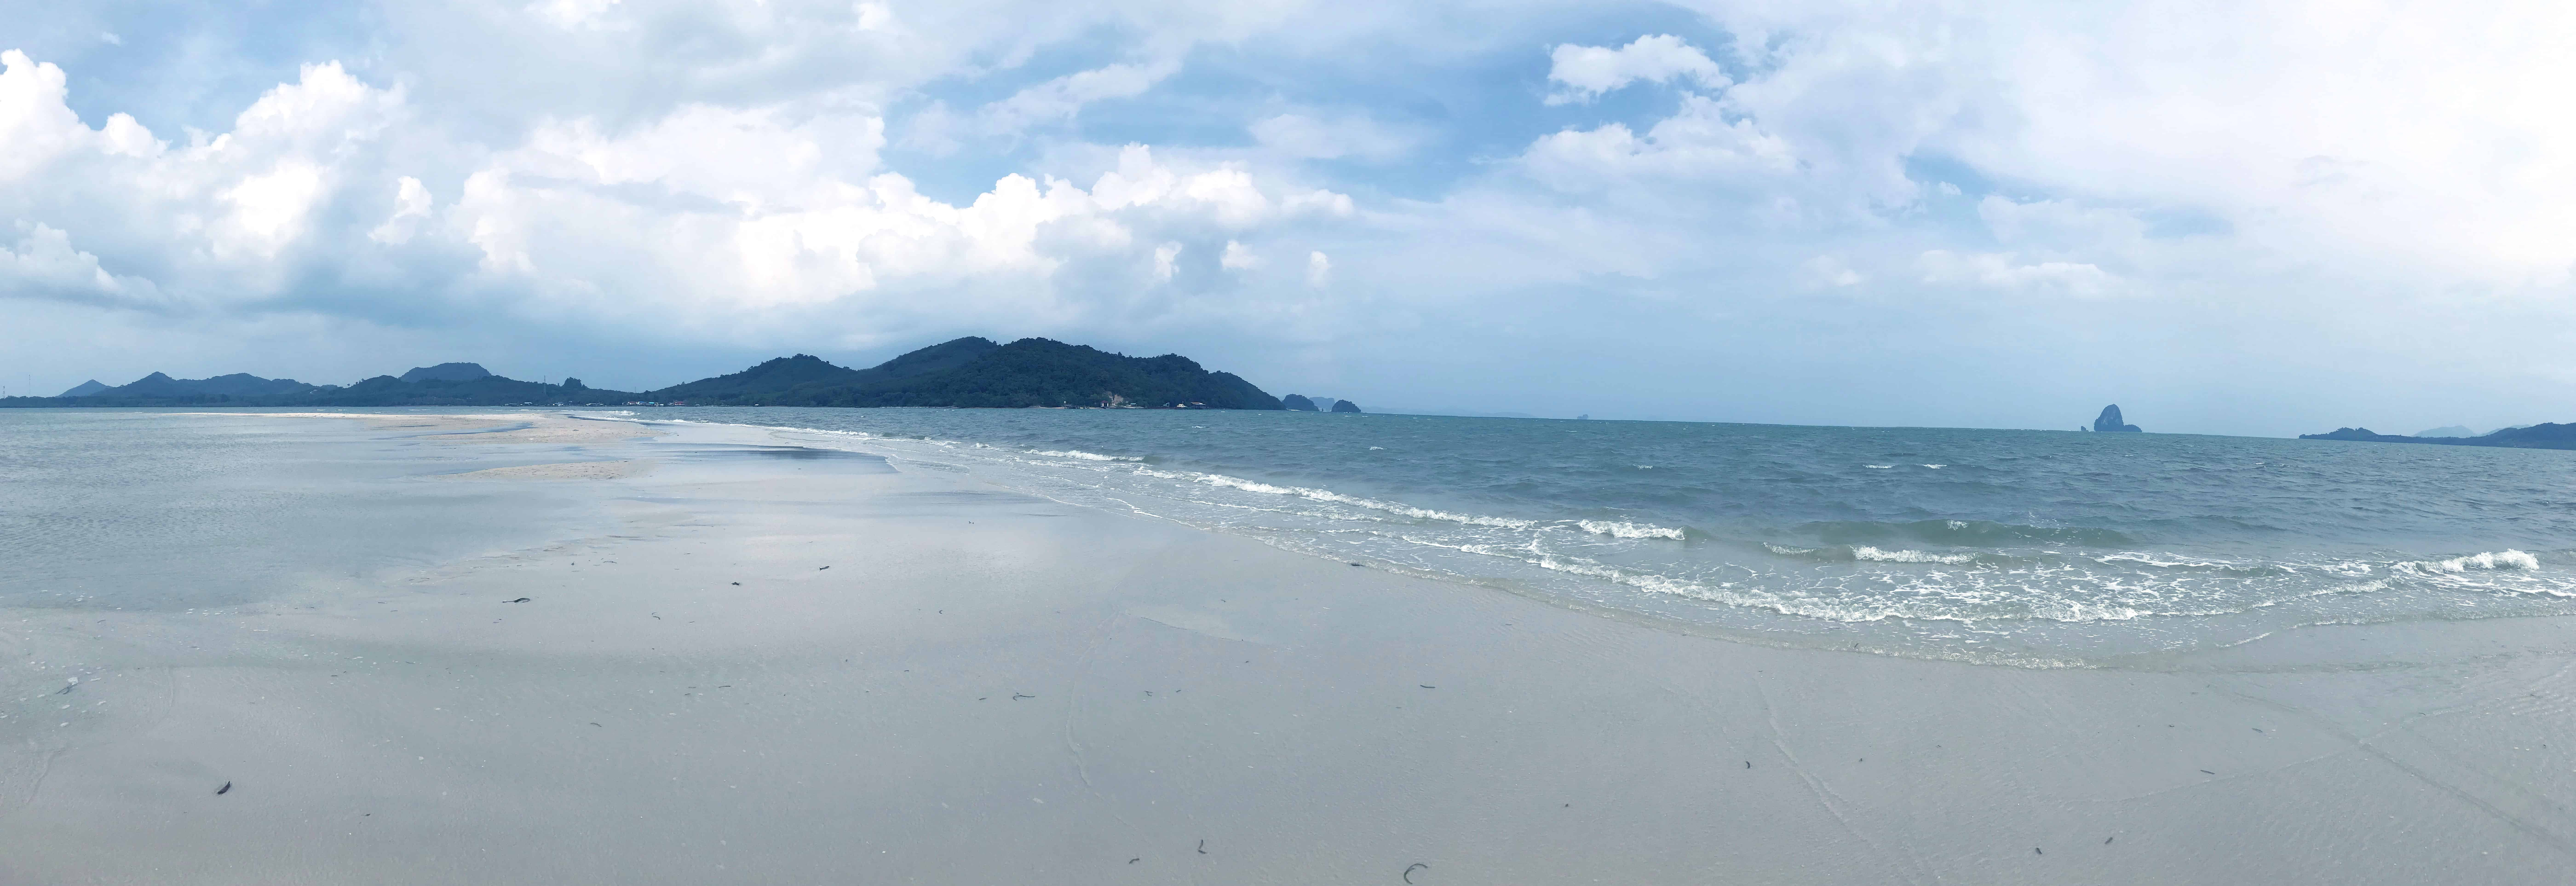 Panorama of Laem Haad also known as Beach Cape